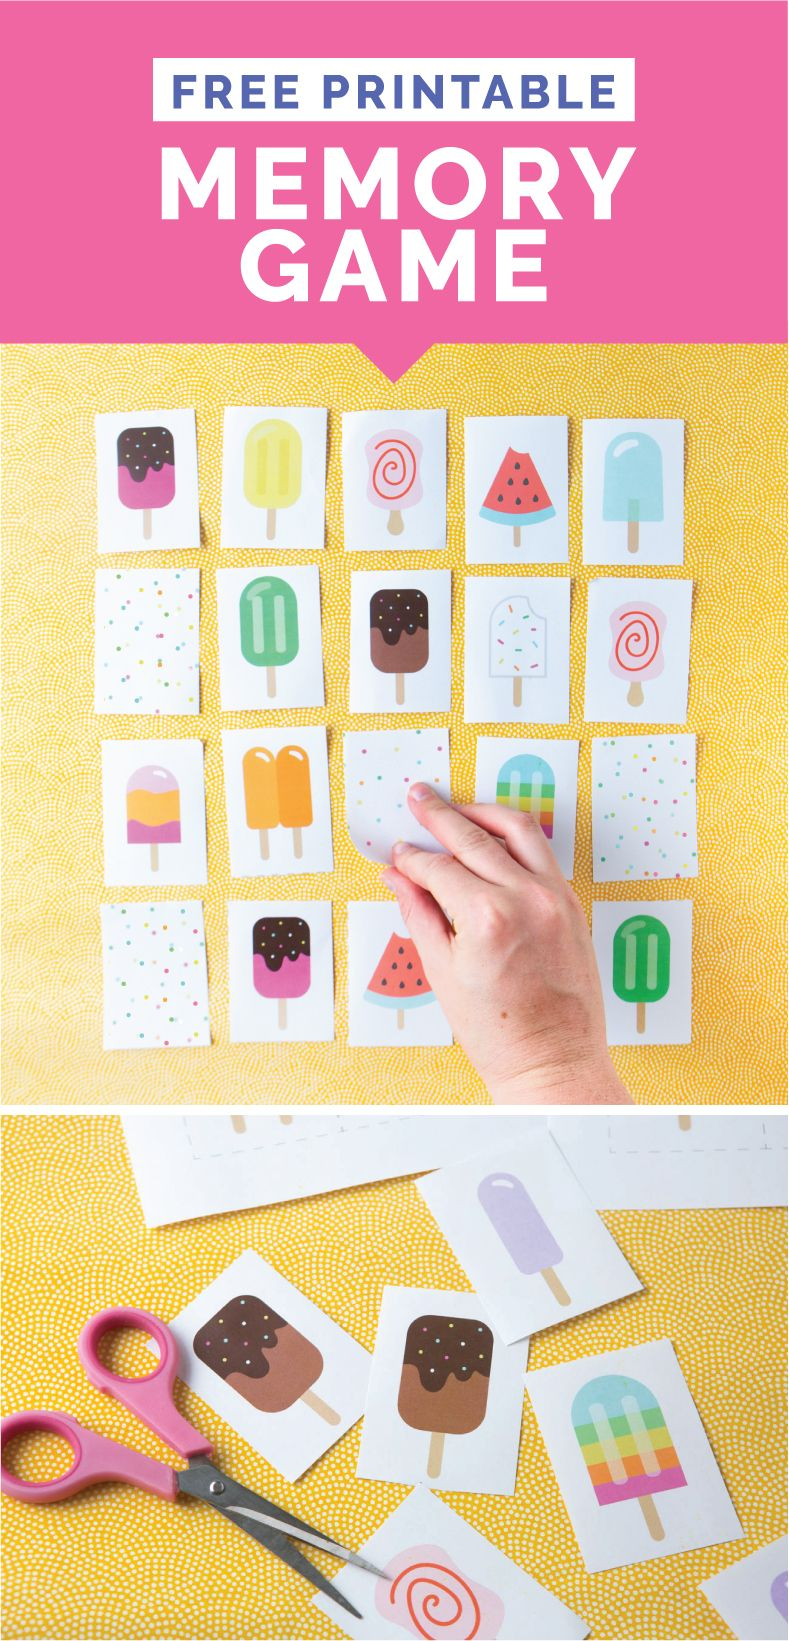 Download your copy of this FREE popsicle-themed Printable Memory Game for Kids! Great for kids and students ages 3-12!